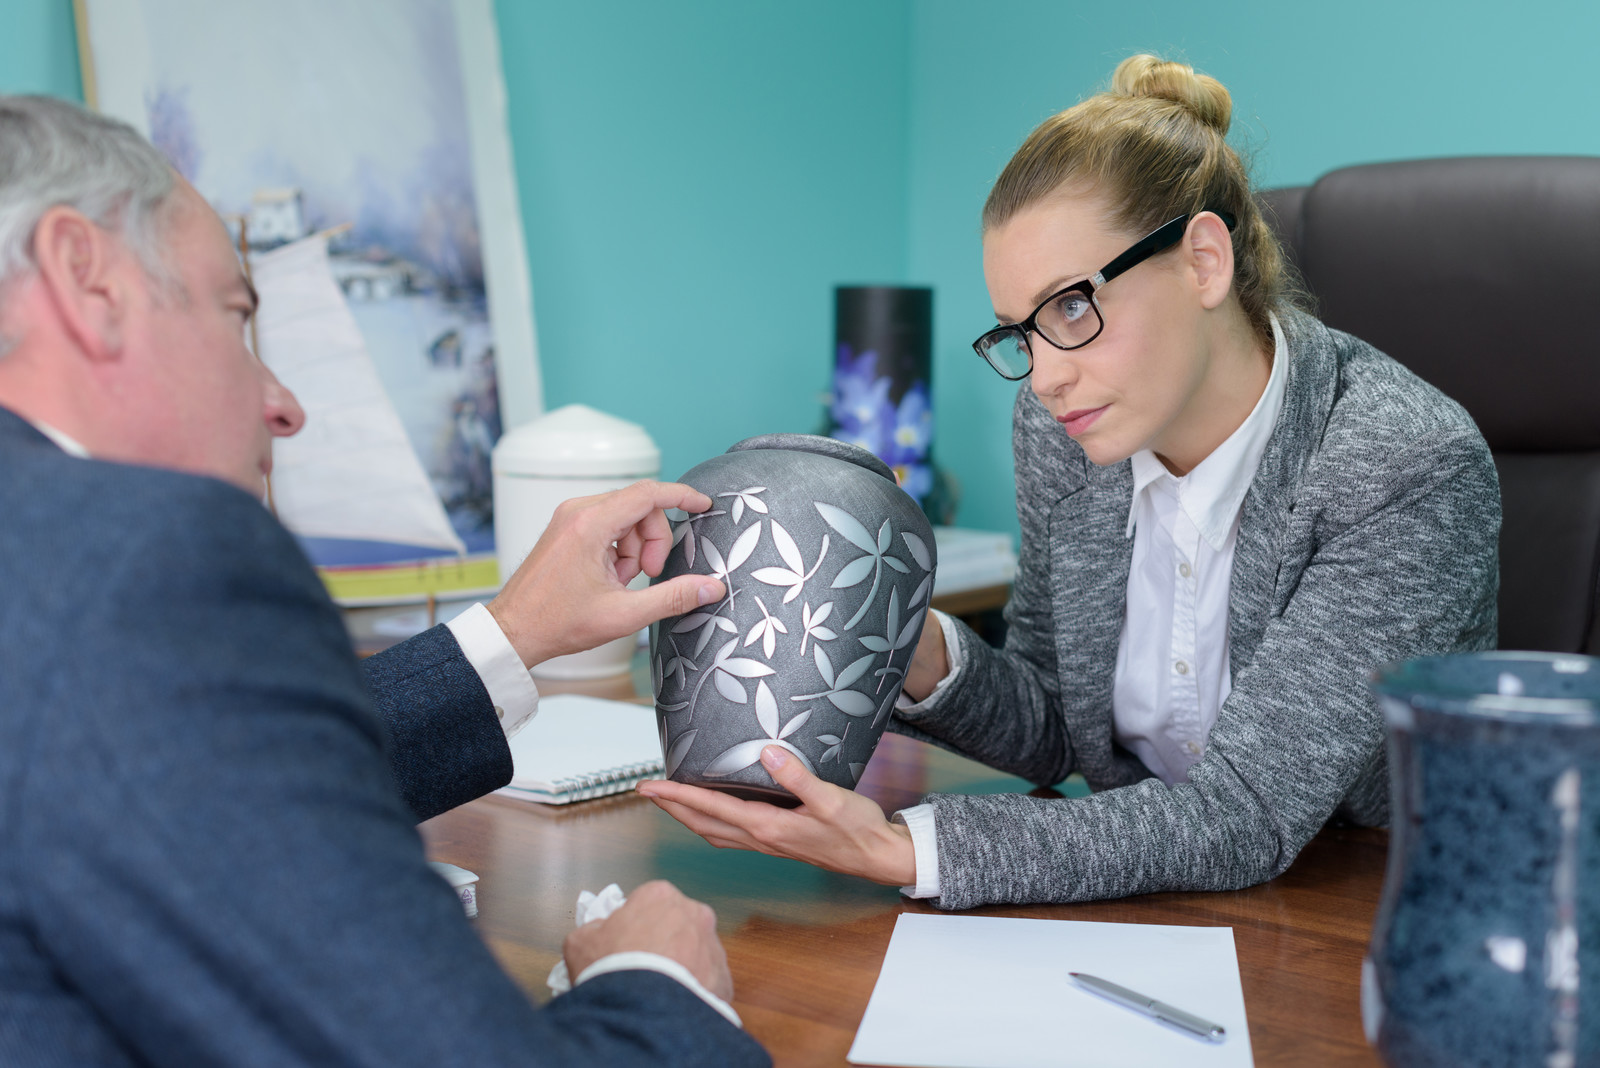 Funeral director showing an elderly man an urn as they sit at her desk